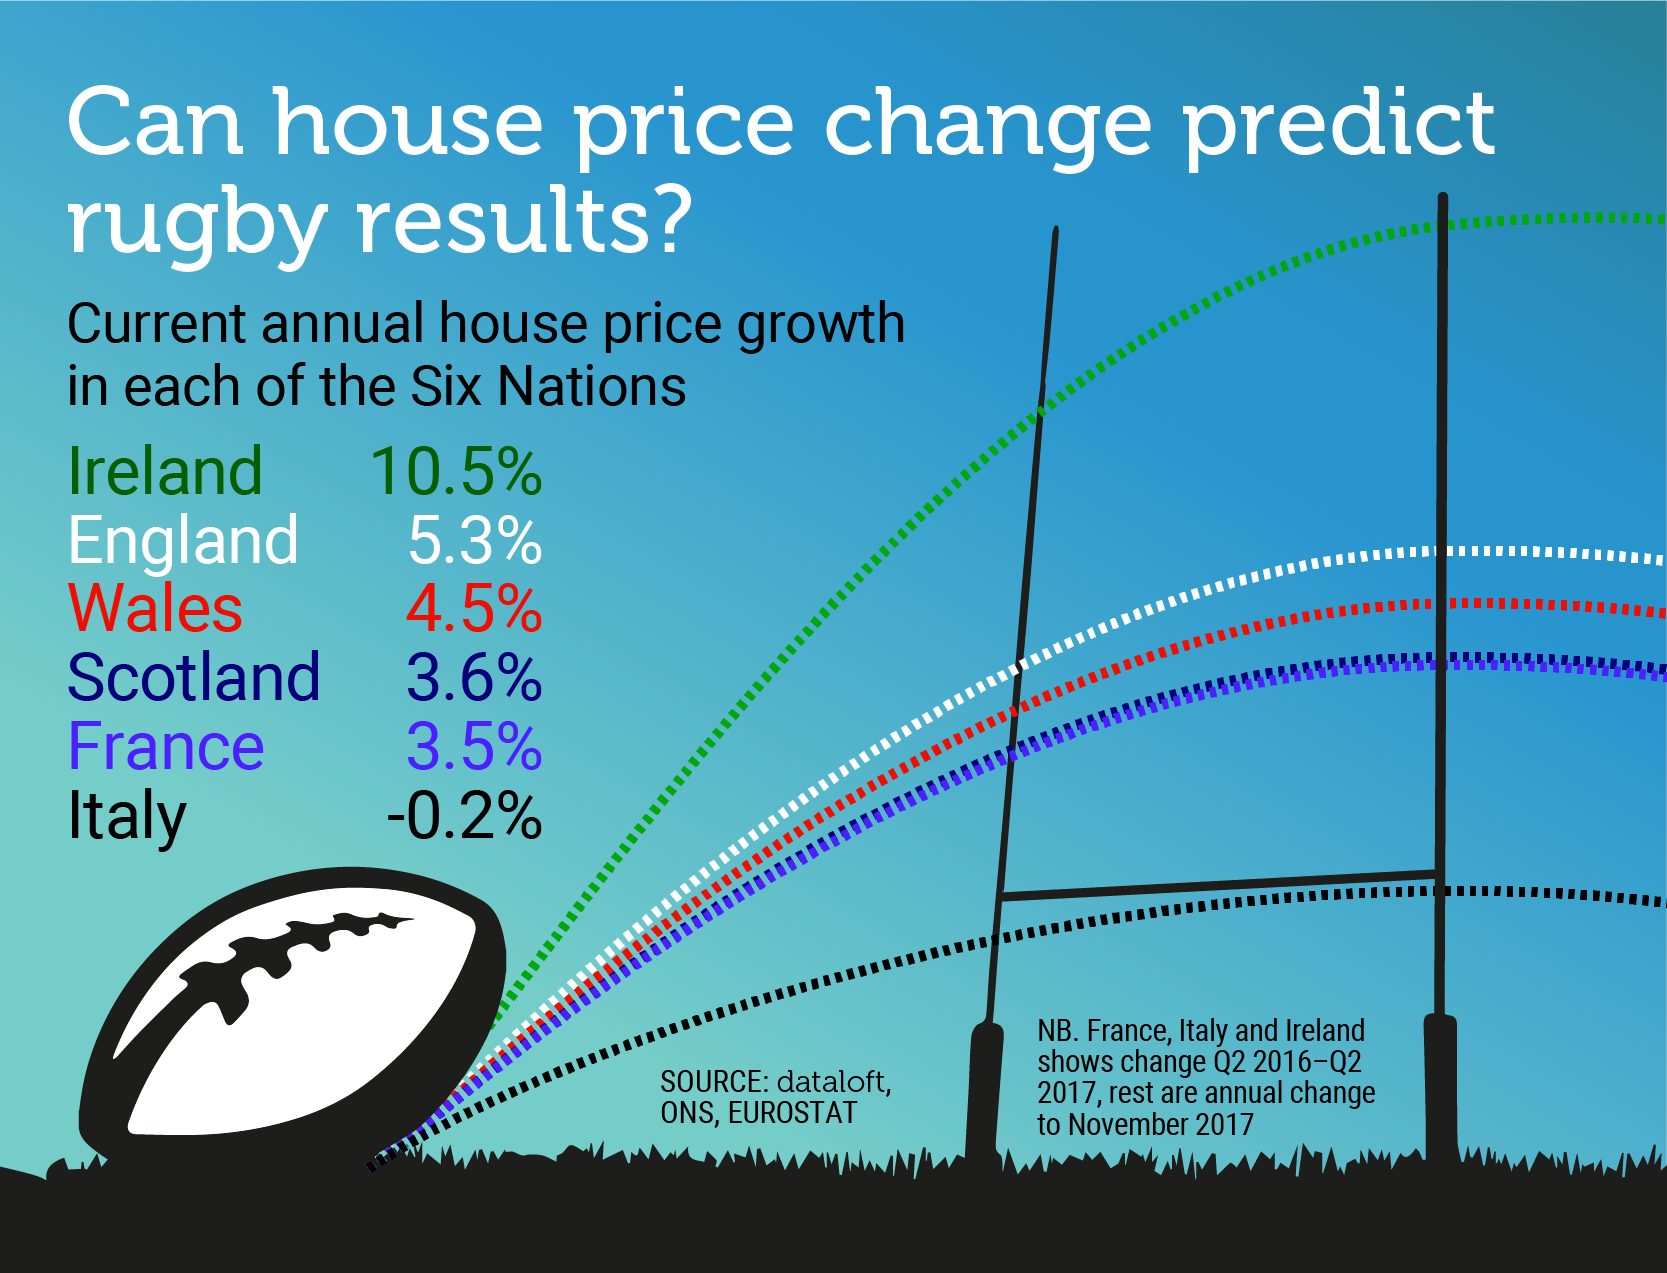 CAN HOUSE PRICE CHANGE PREDICT RUGBY RESULTS?